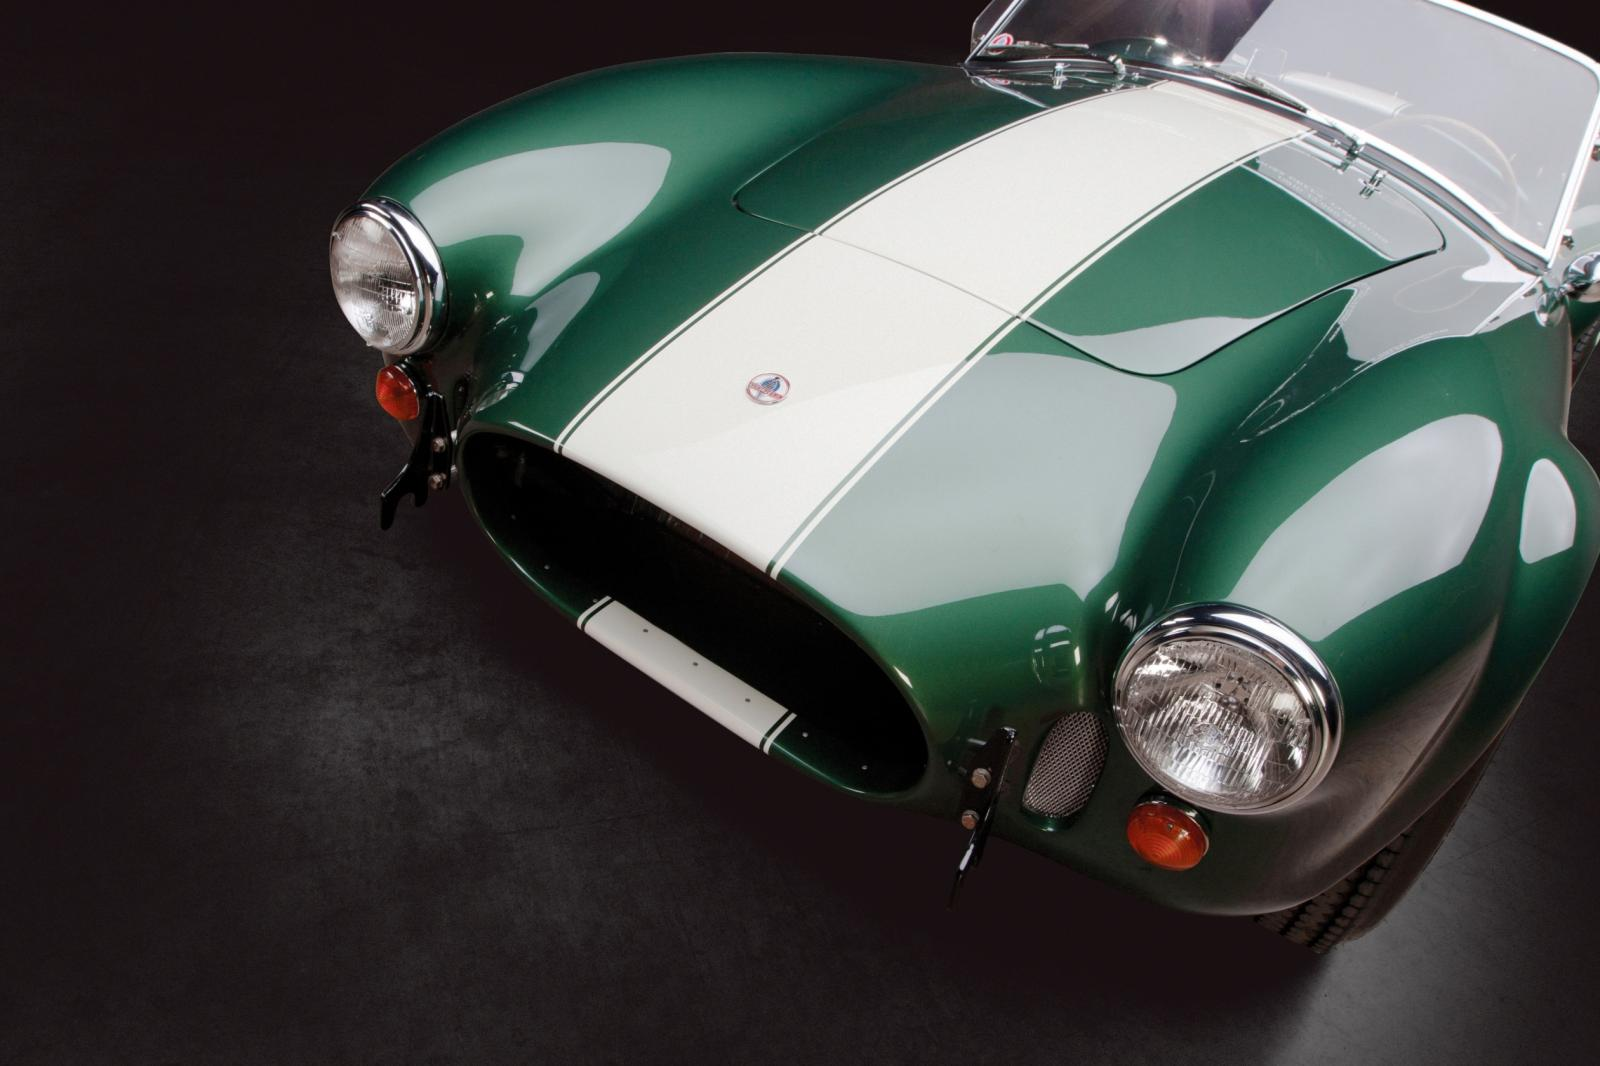 Rm Dallas Preview - ORIGINAL 1967 Shelby 427 Cobra Estimated at $1MM+ 12